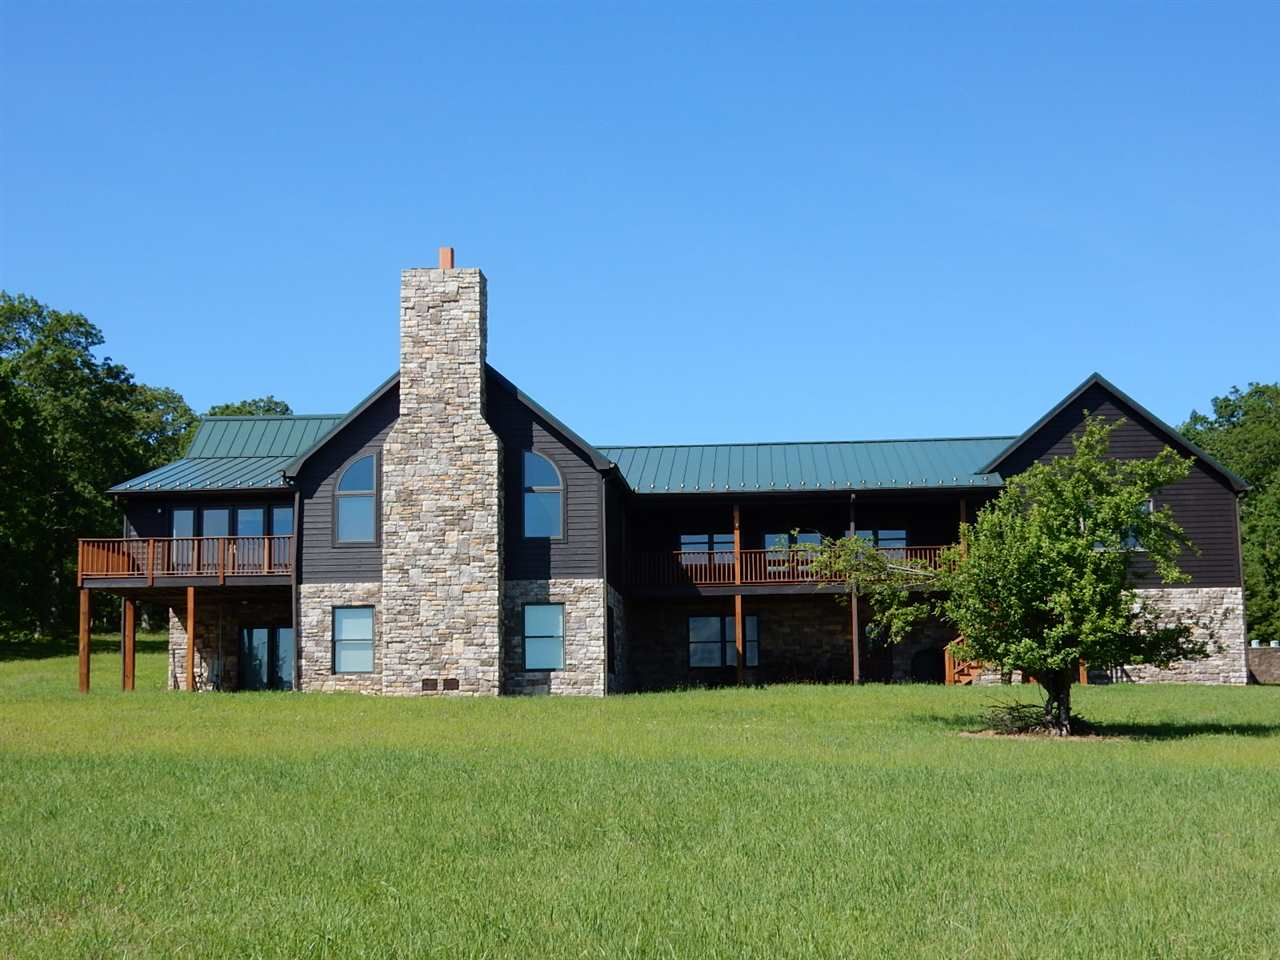 265 BEAR ROCK RIDGE RD, WARM SPRINGS, VA 24484